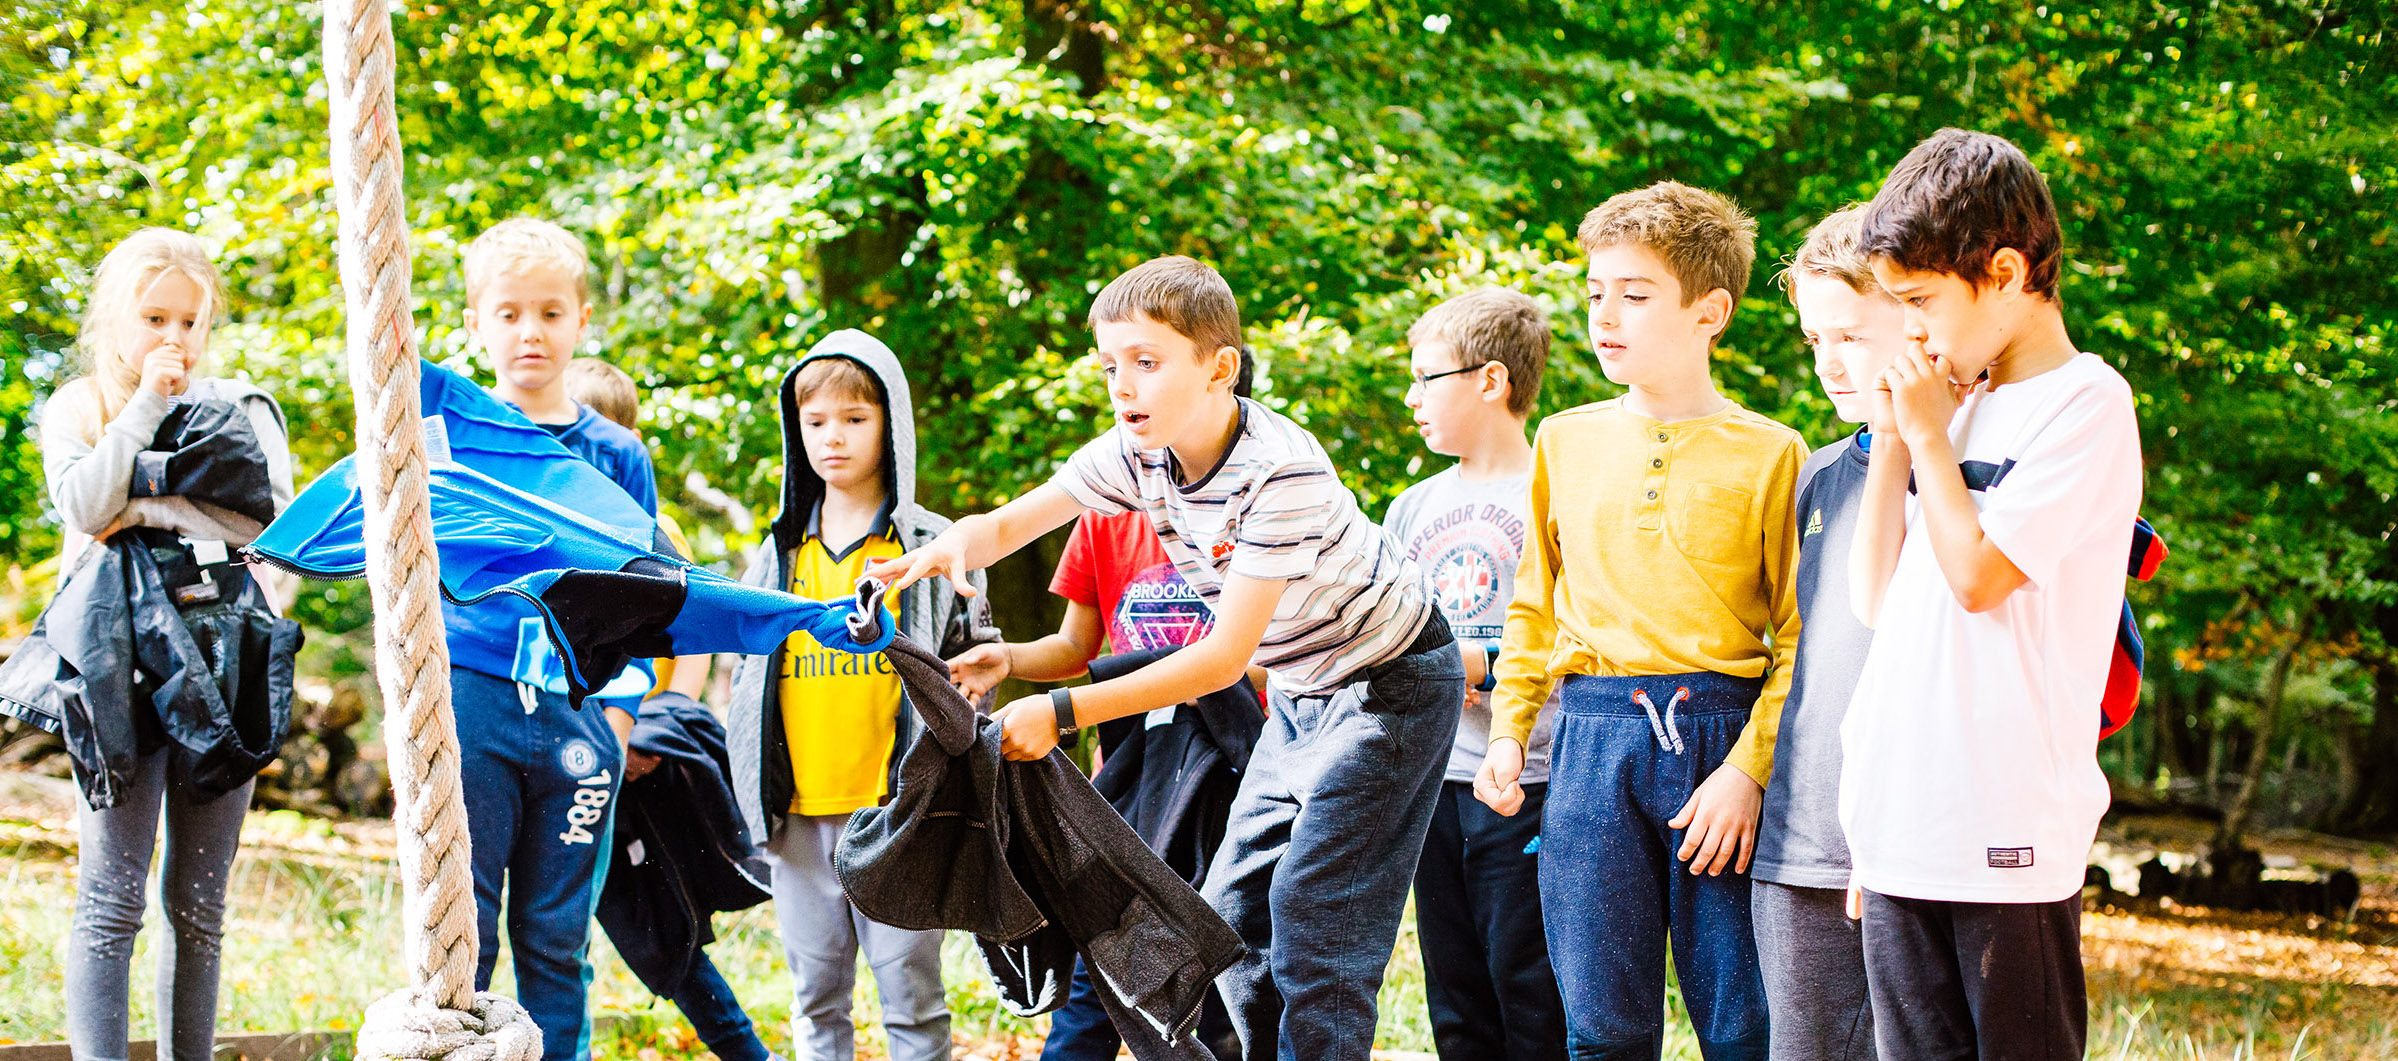 young people doing an outdoor activity